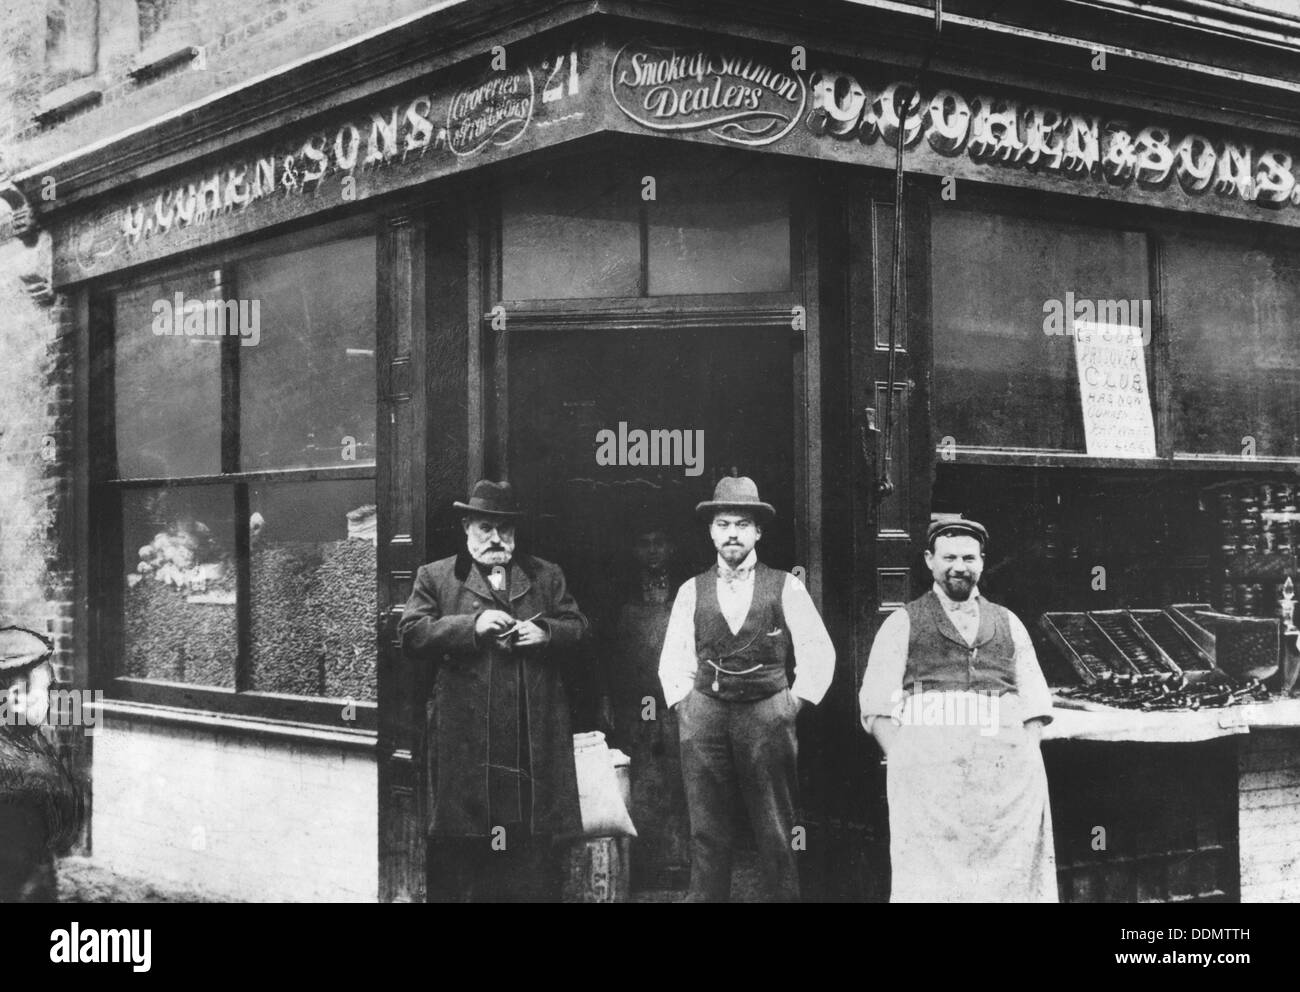 Cohen & Sons, grocers, East End of London, c1890. - Stock Image